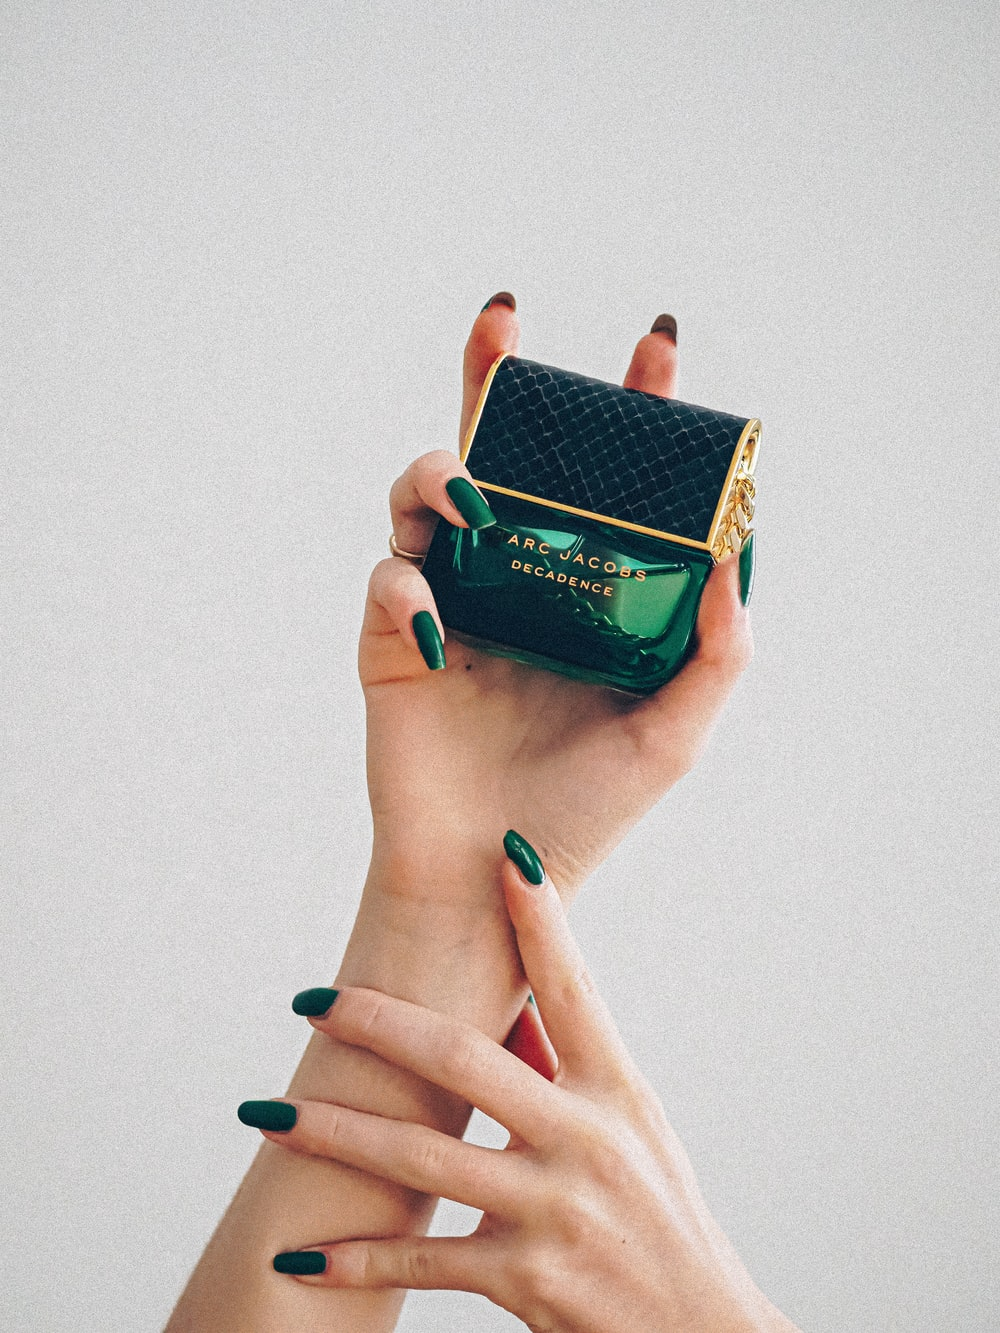 person holding green and yellow box